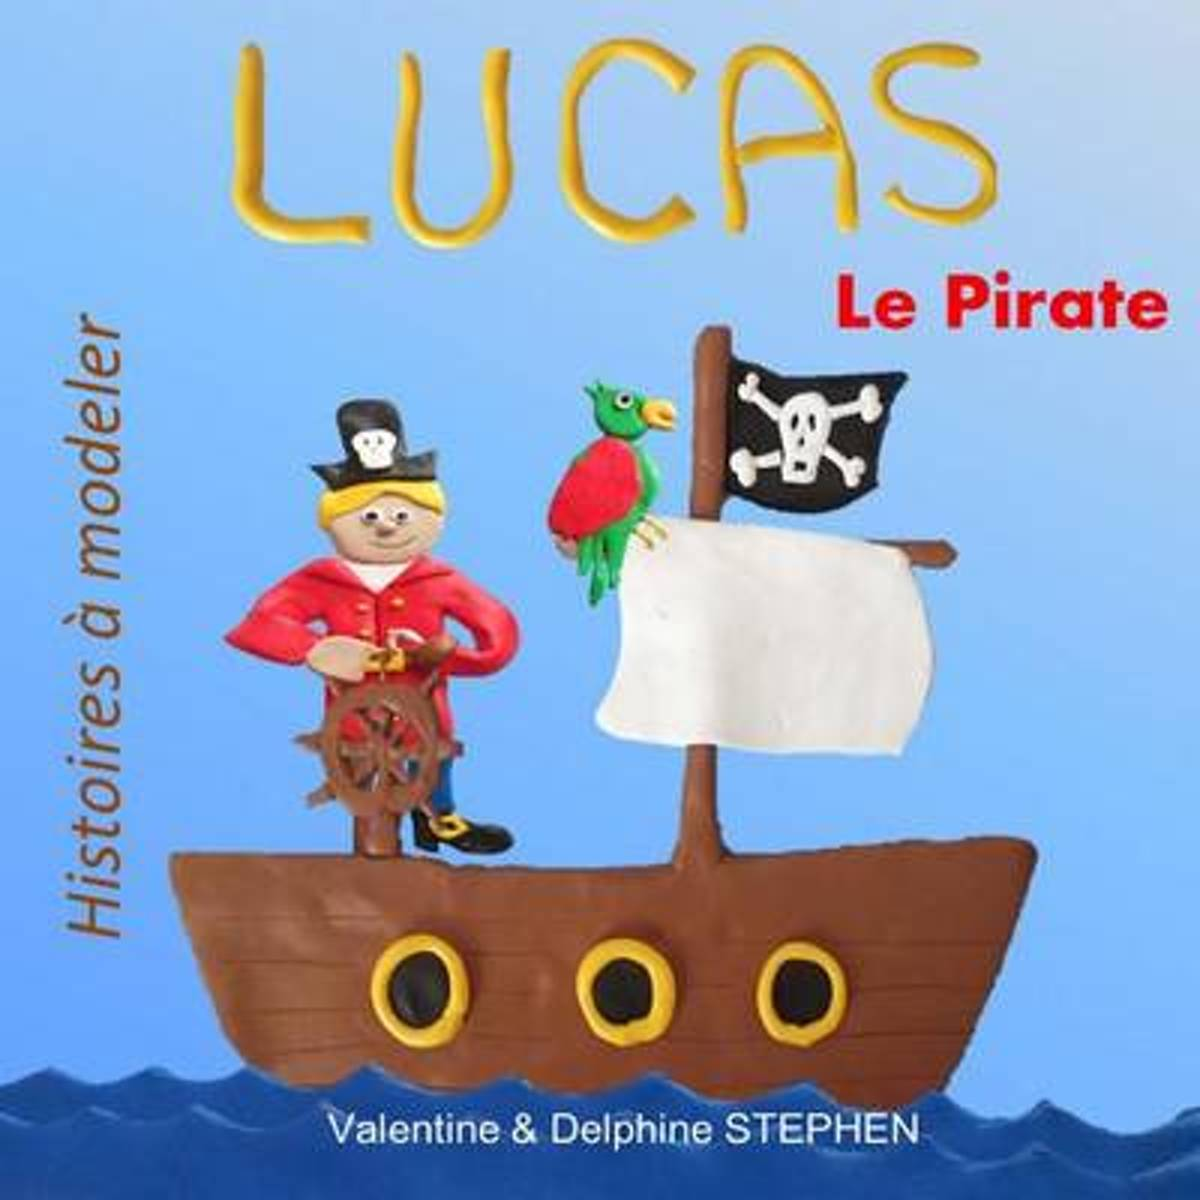 Lucas Le Pirate